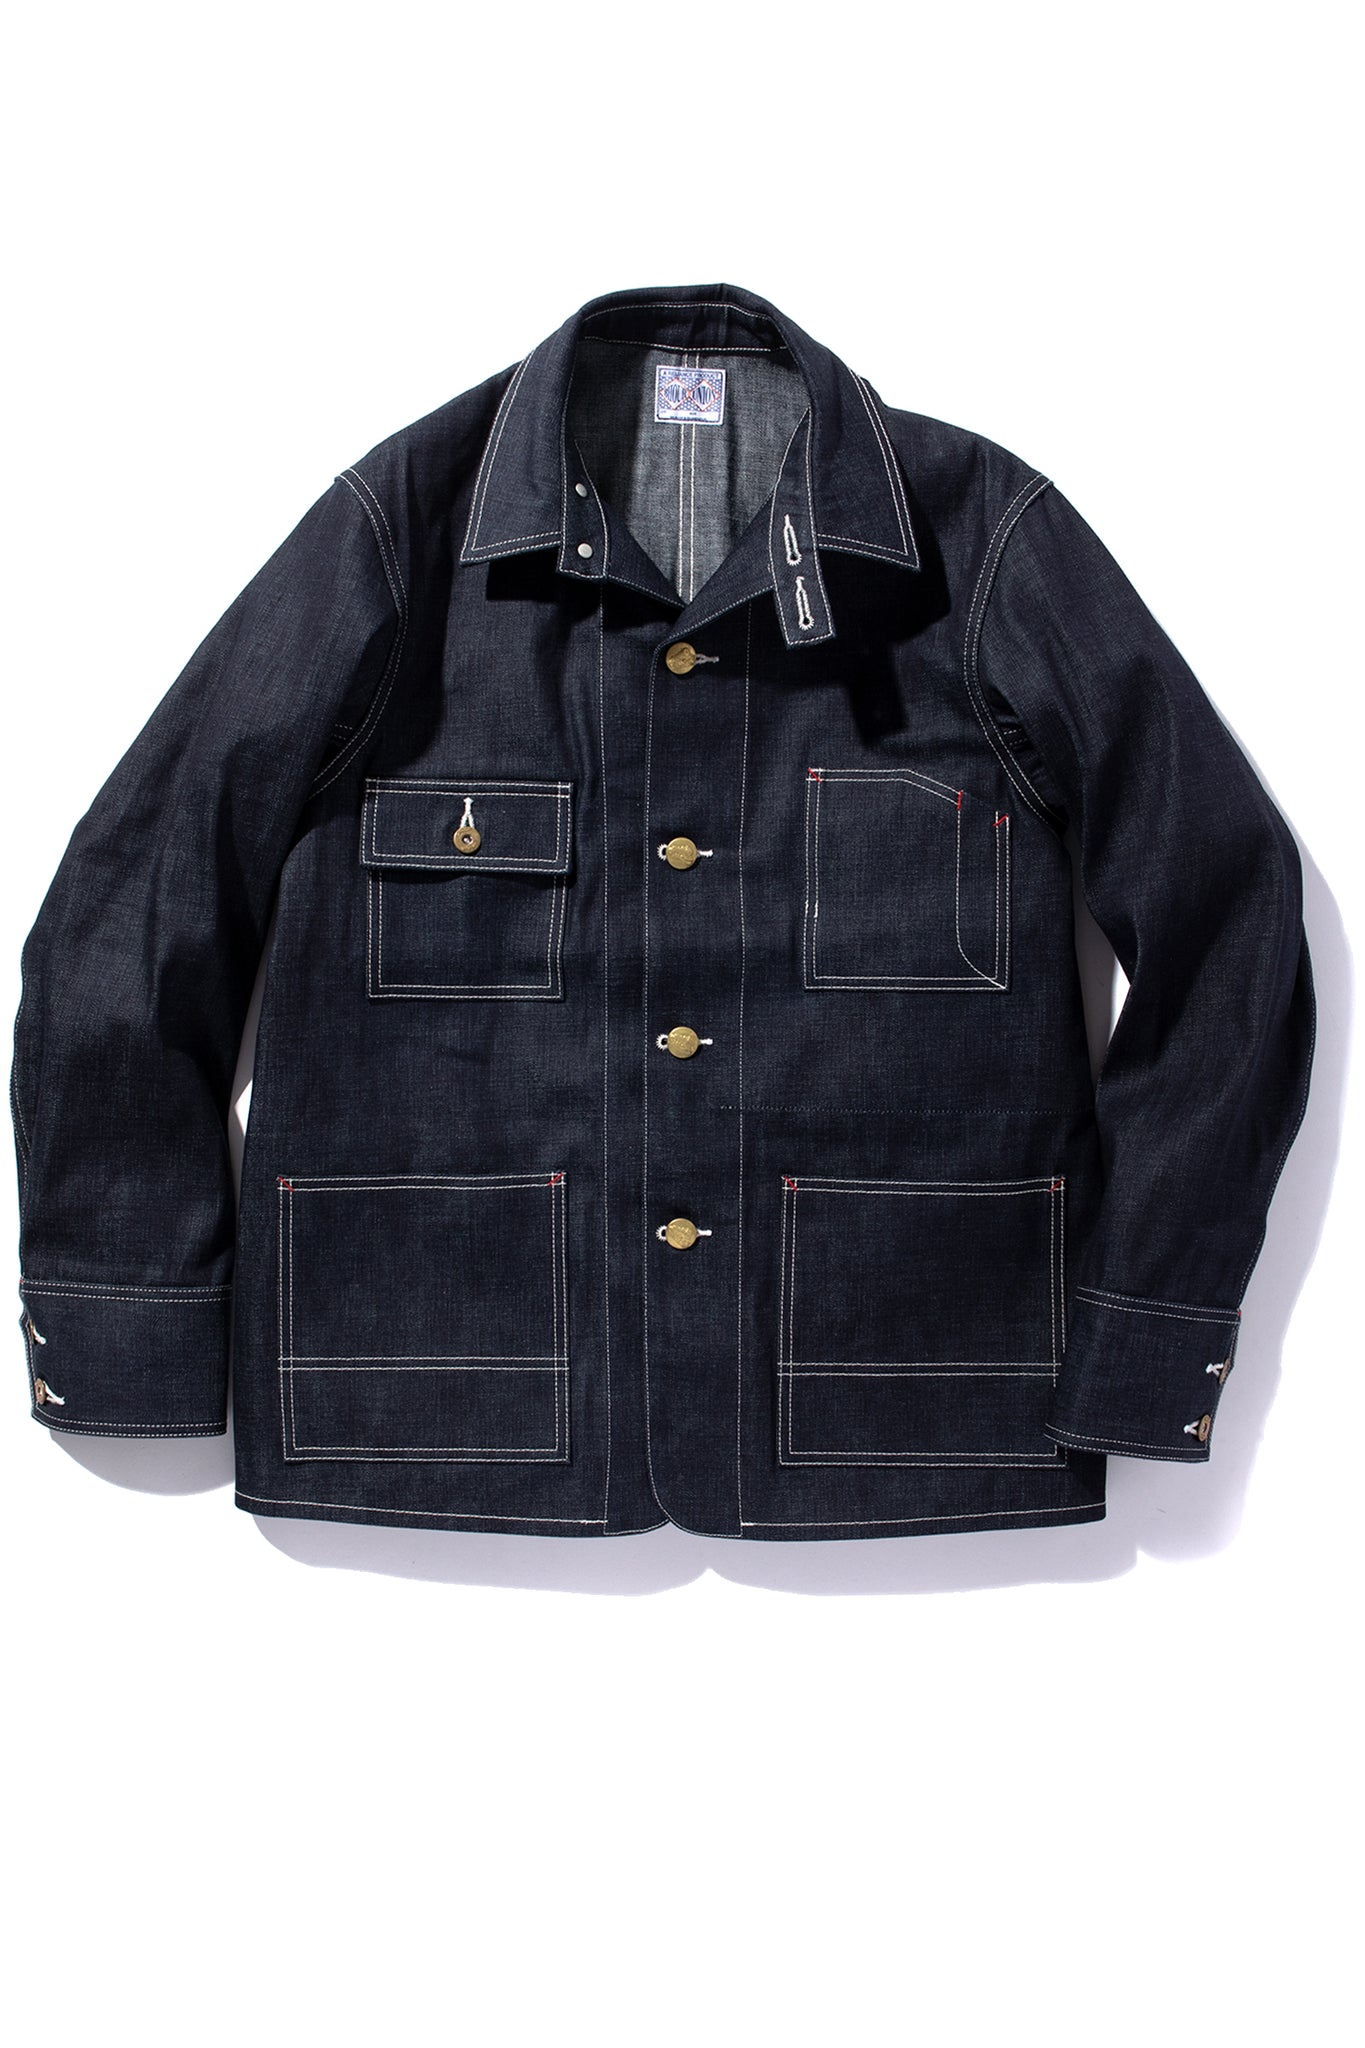 8HU DENIM CHORE COAT